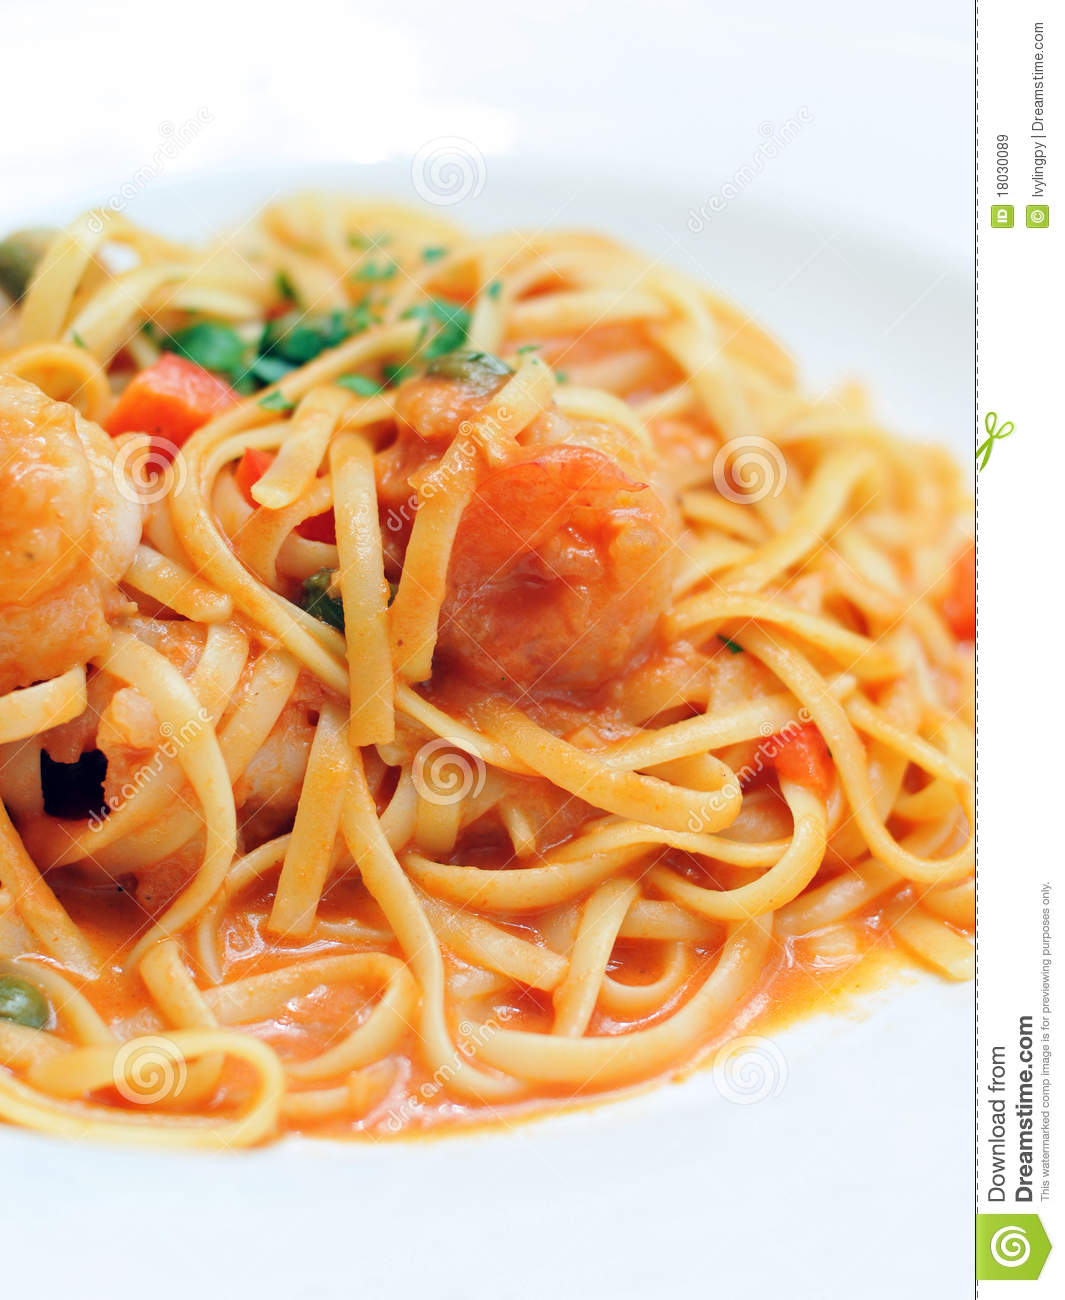 Linguine With Shrimp Royalty Free Stock Images - Image: 18030089